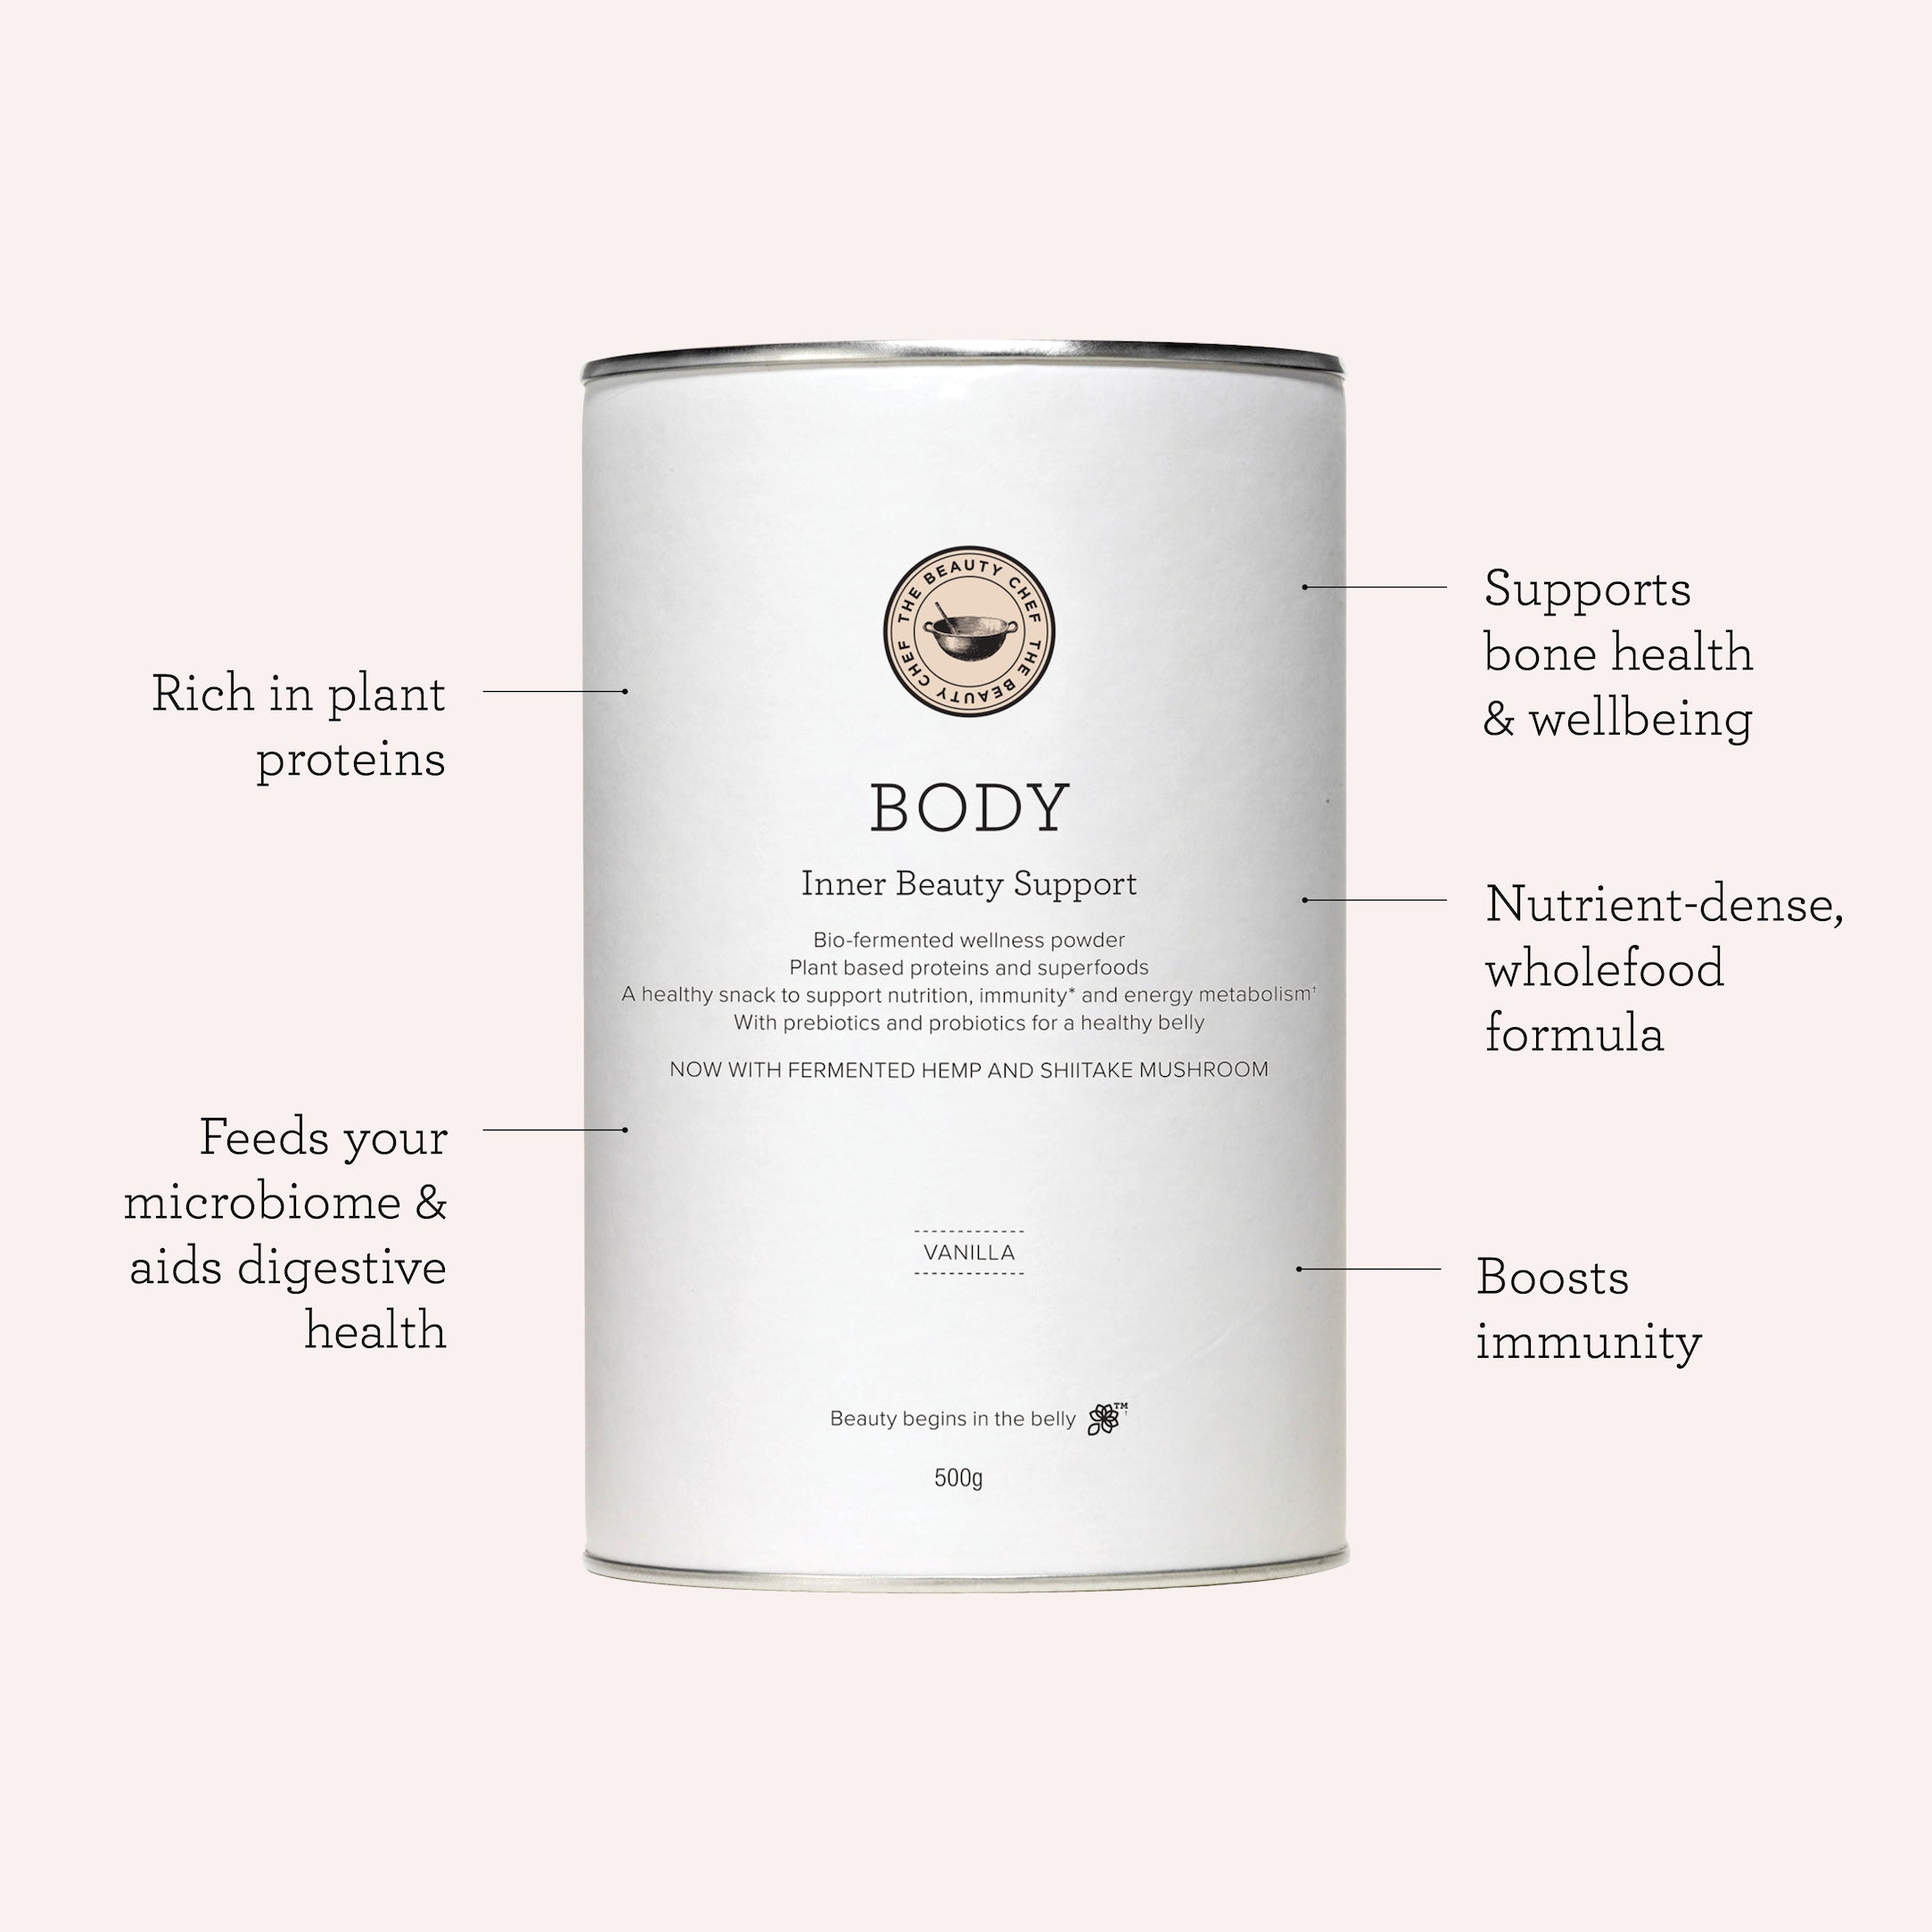 Body inner beauty powder product benefits map